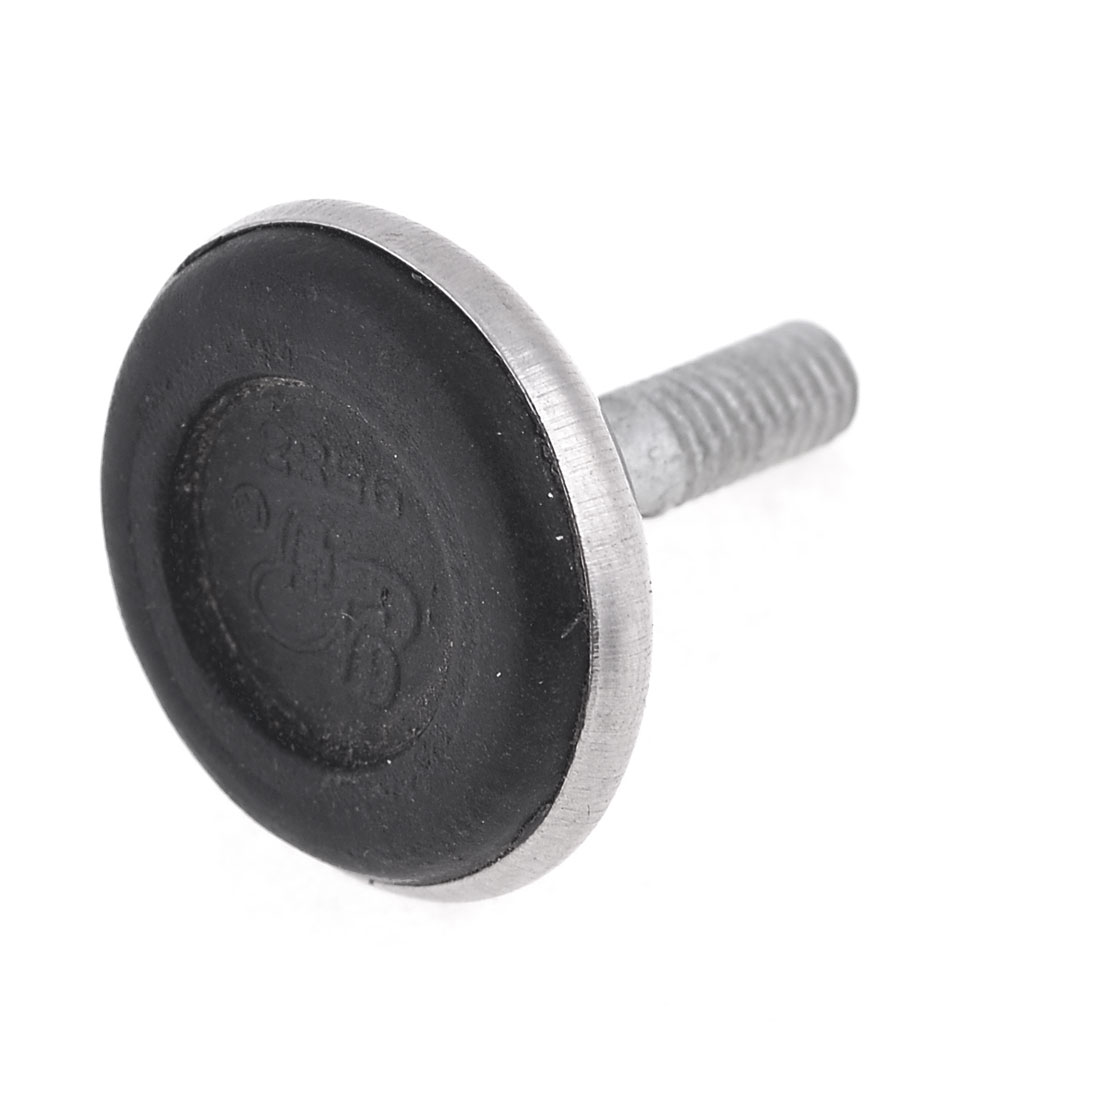 5.5mmx10mmx29mm Adjustable Threaded Metal Rod Leveling Foot Support